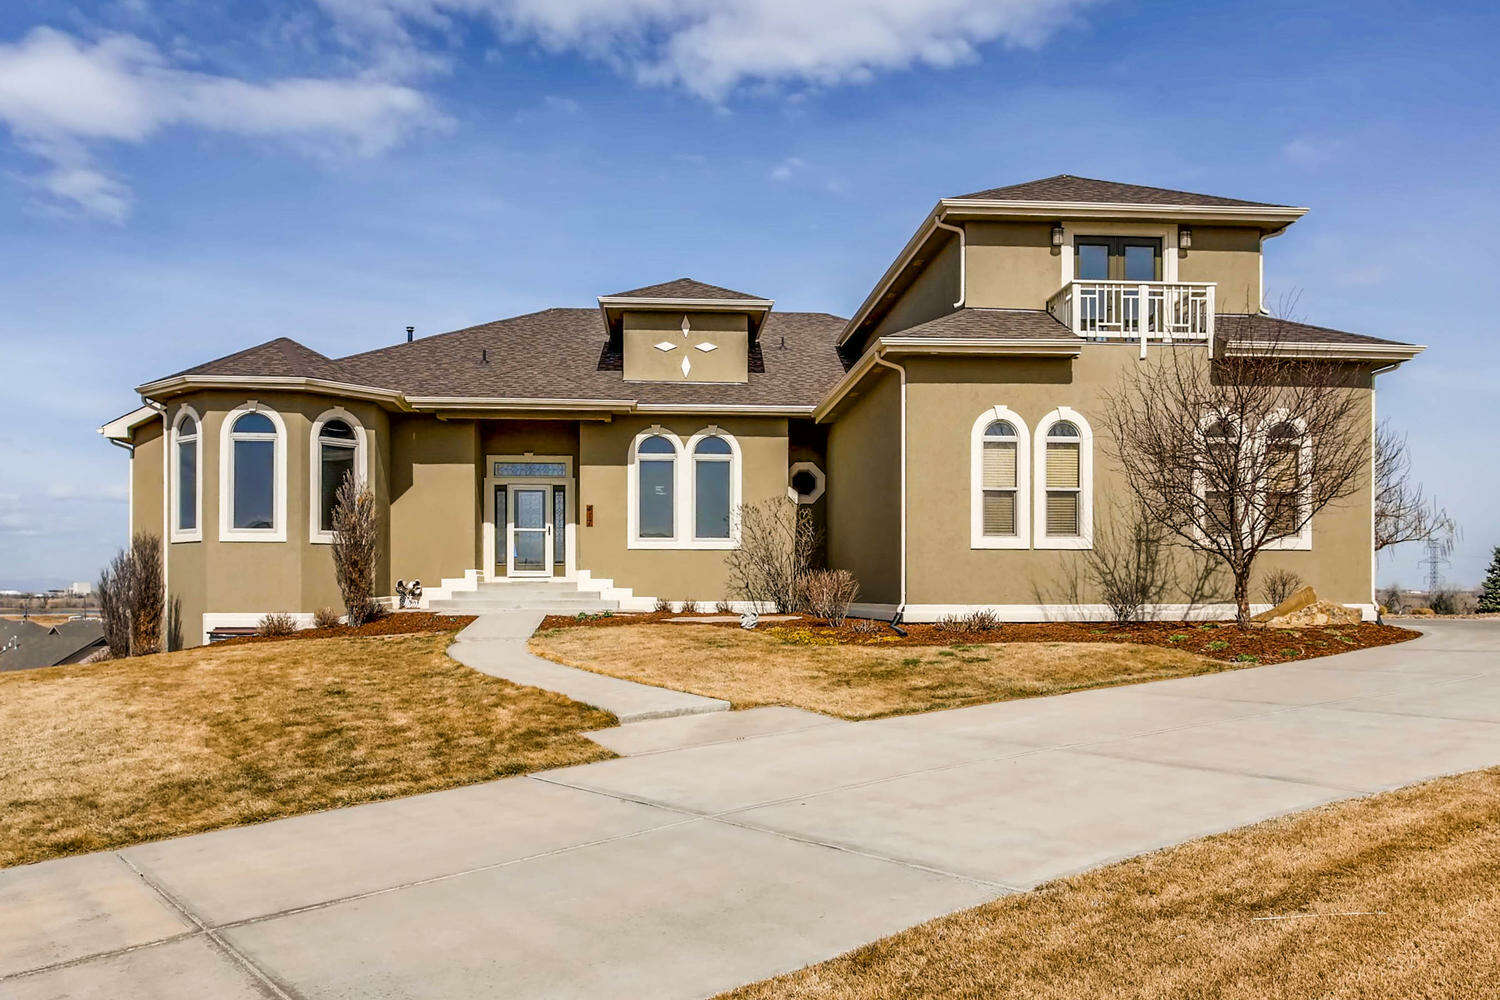 Single Family for Sale at 417 Horizon Greeley, Colorado 80634 United States